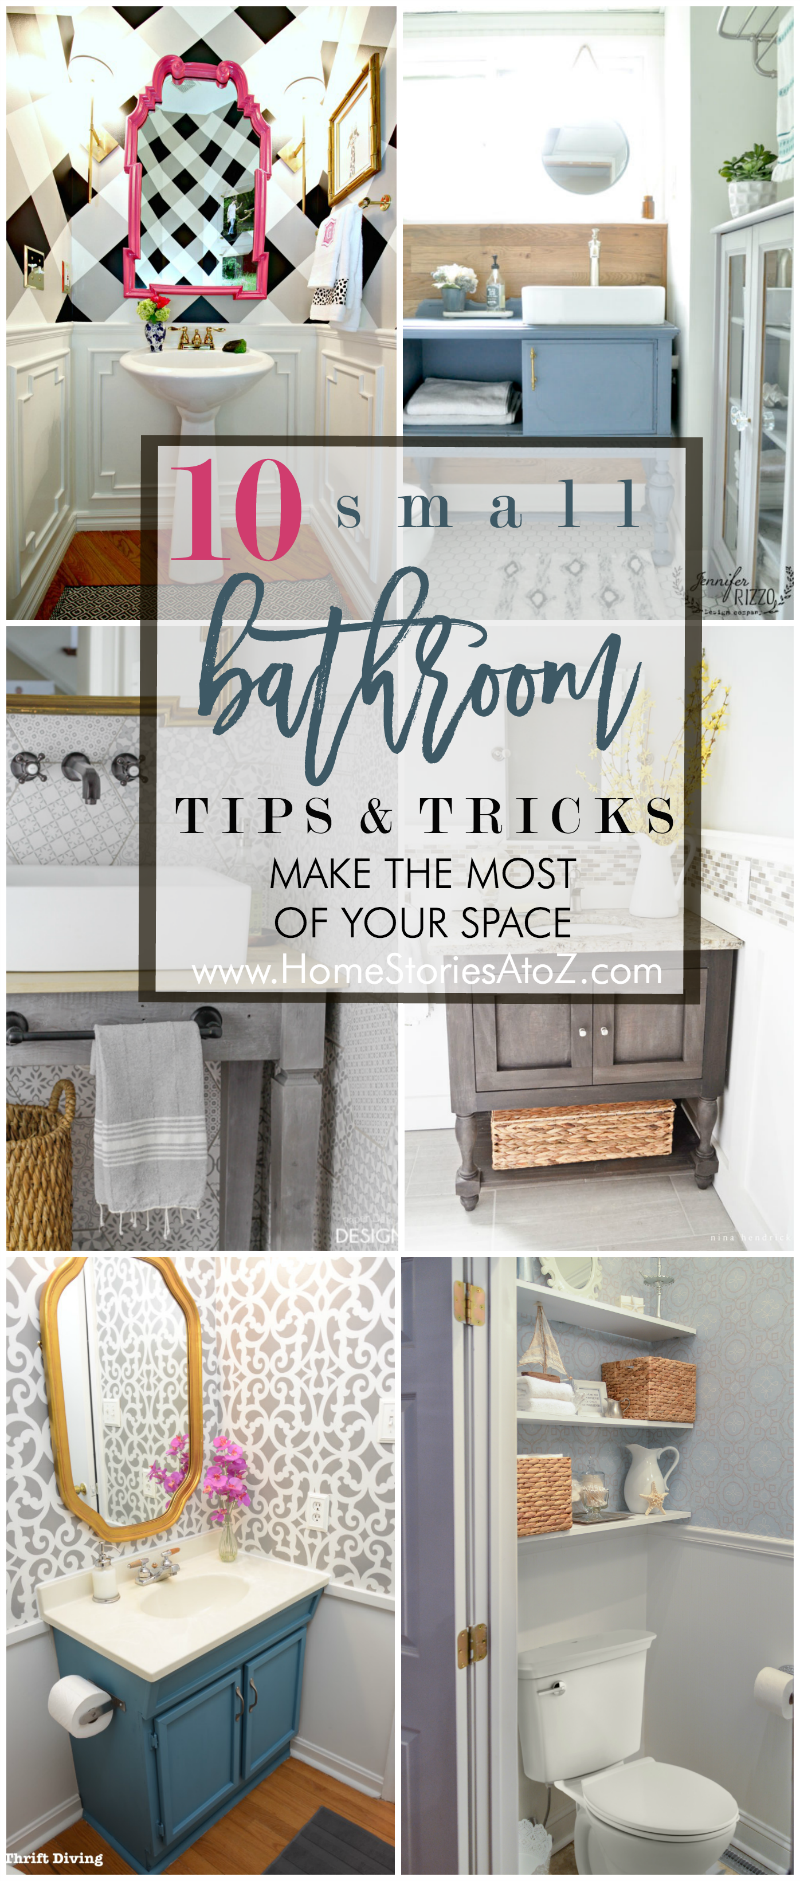 10 Helpful Tips for Making the Most of Your Small Bathroom | Small ...